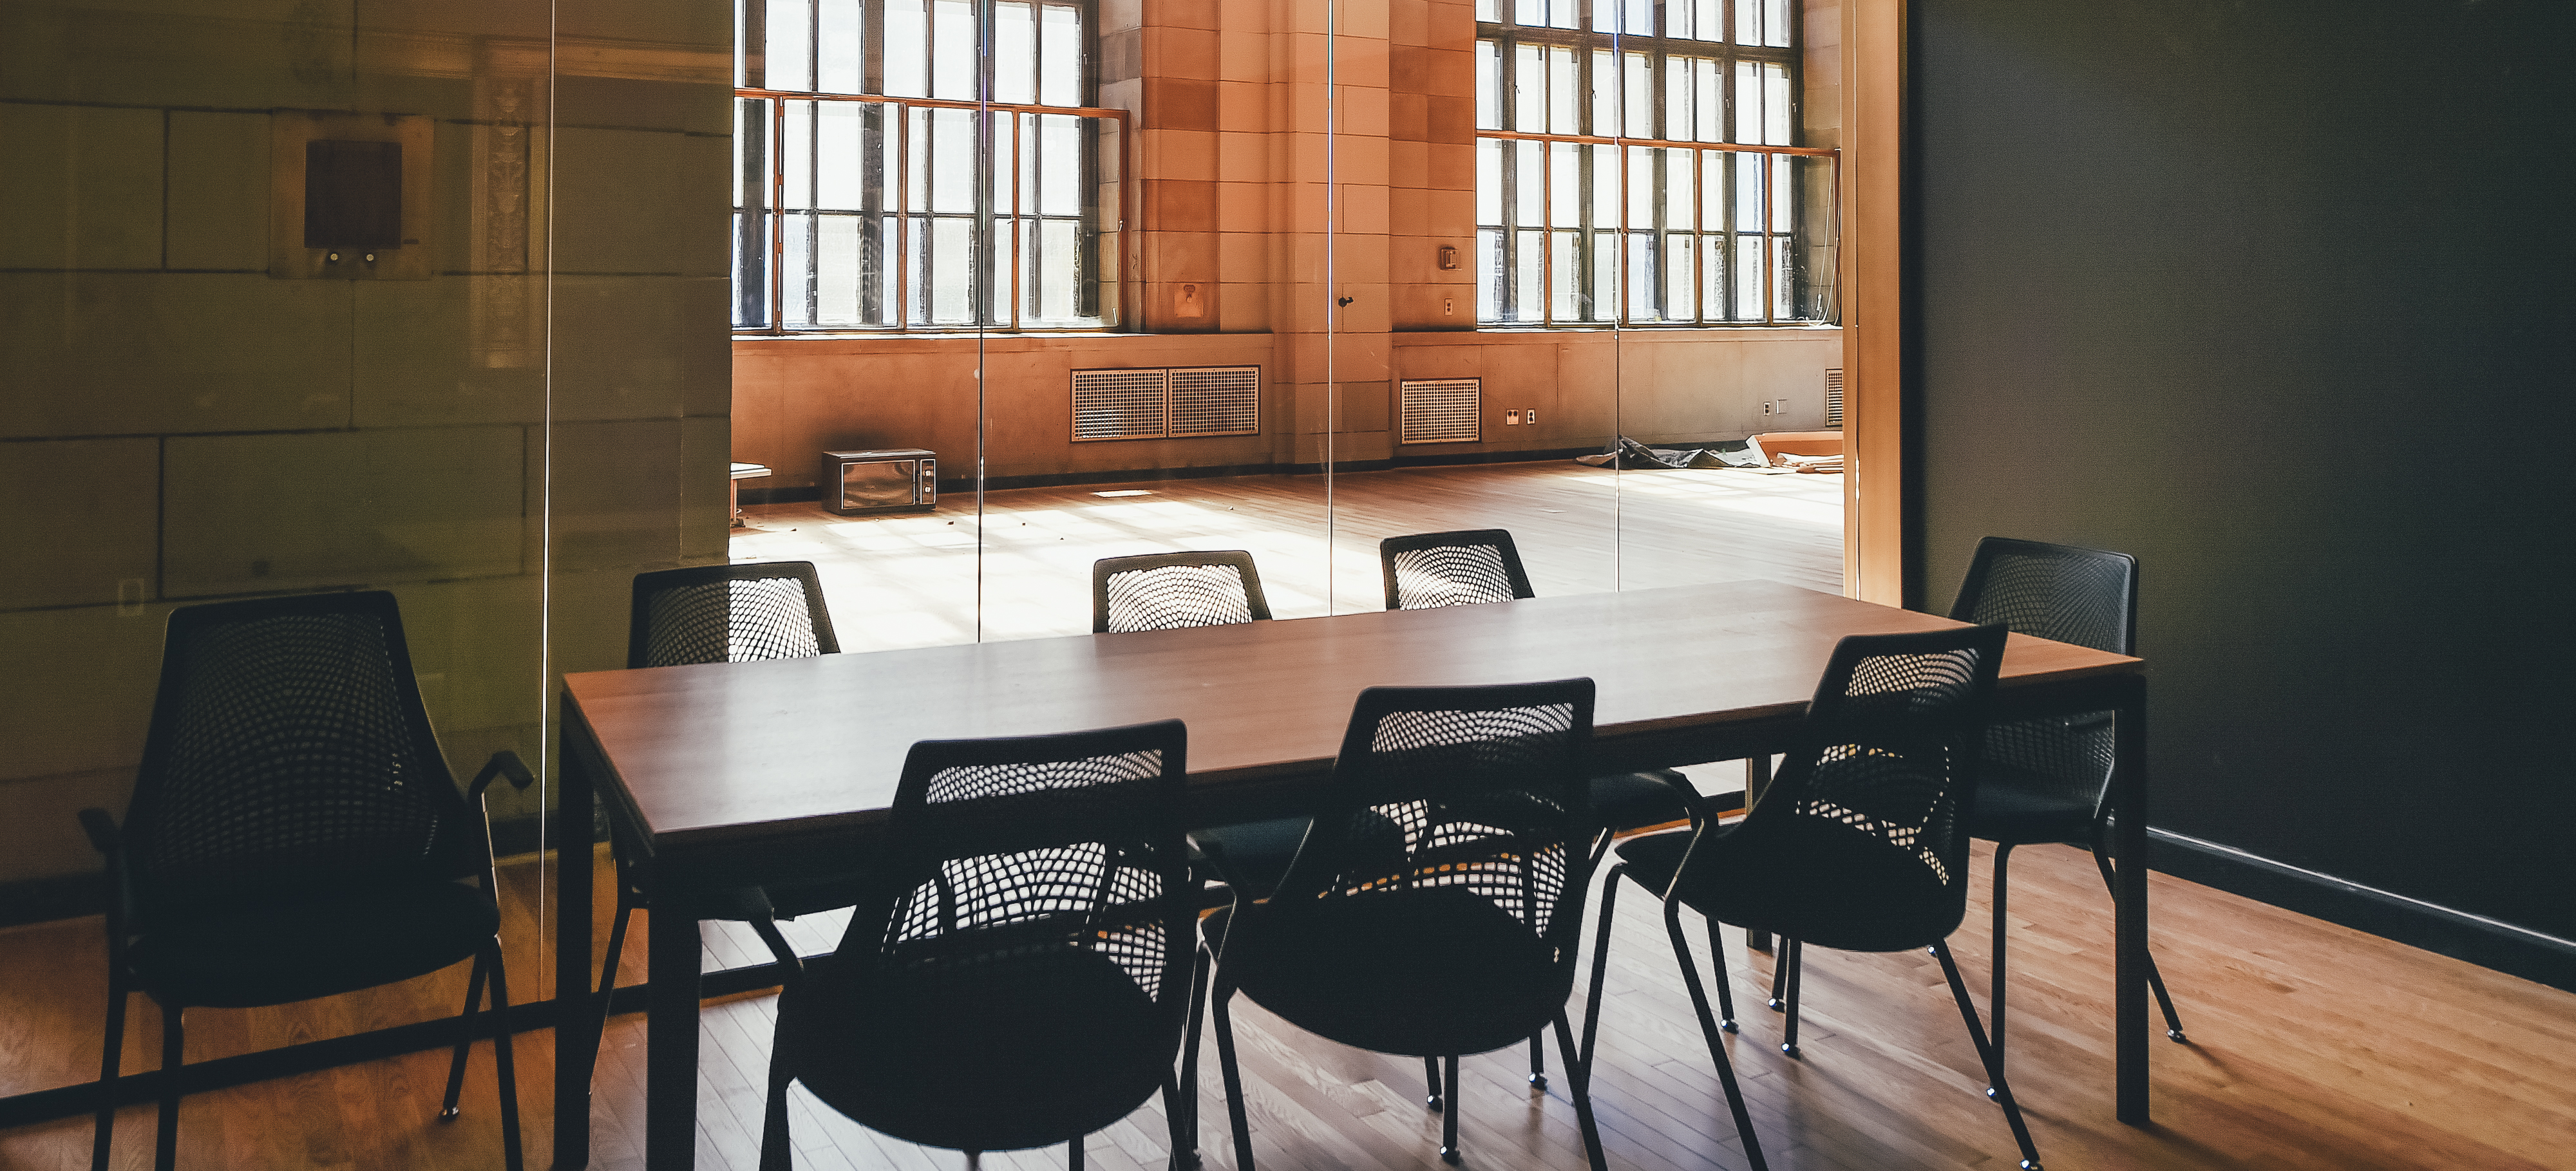 office space image. An Empty Table With Several Chairs In A Small Conference Room Office Space Image